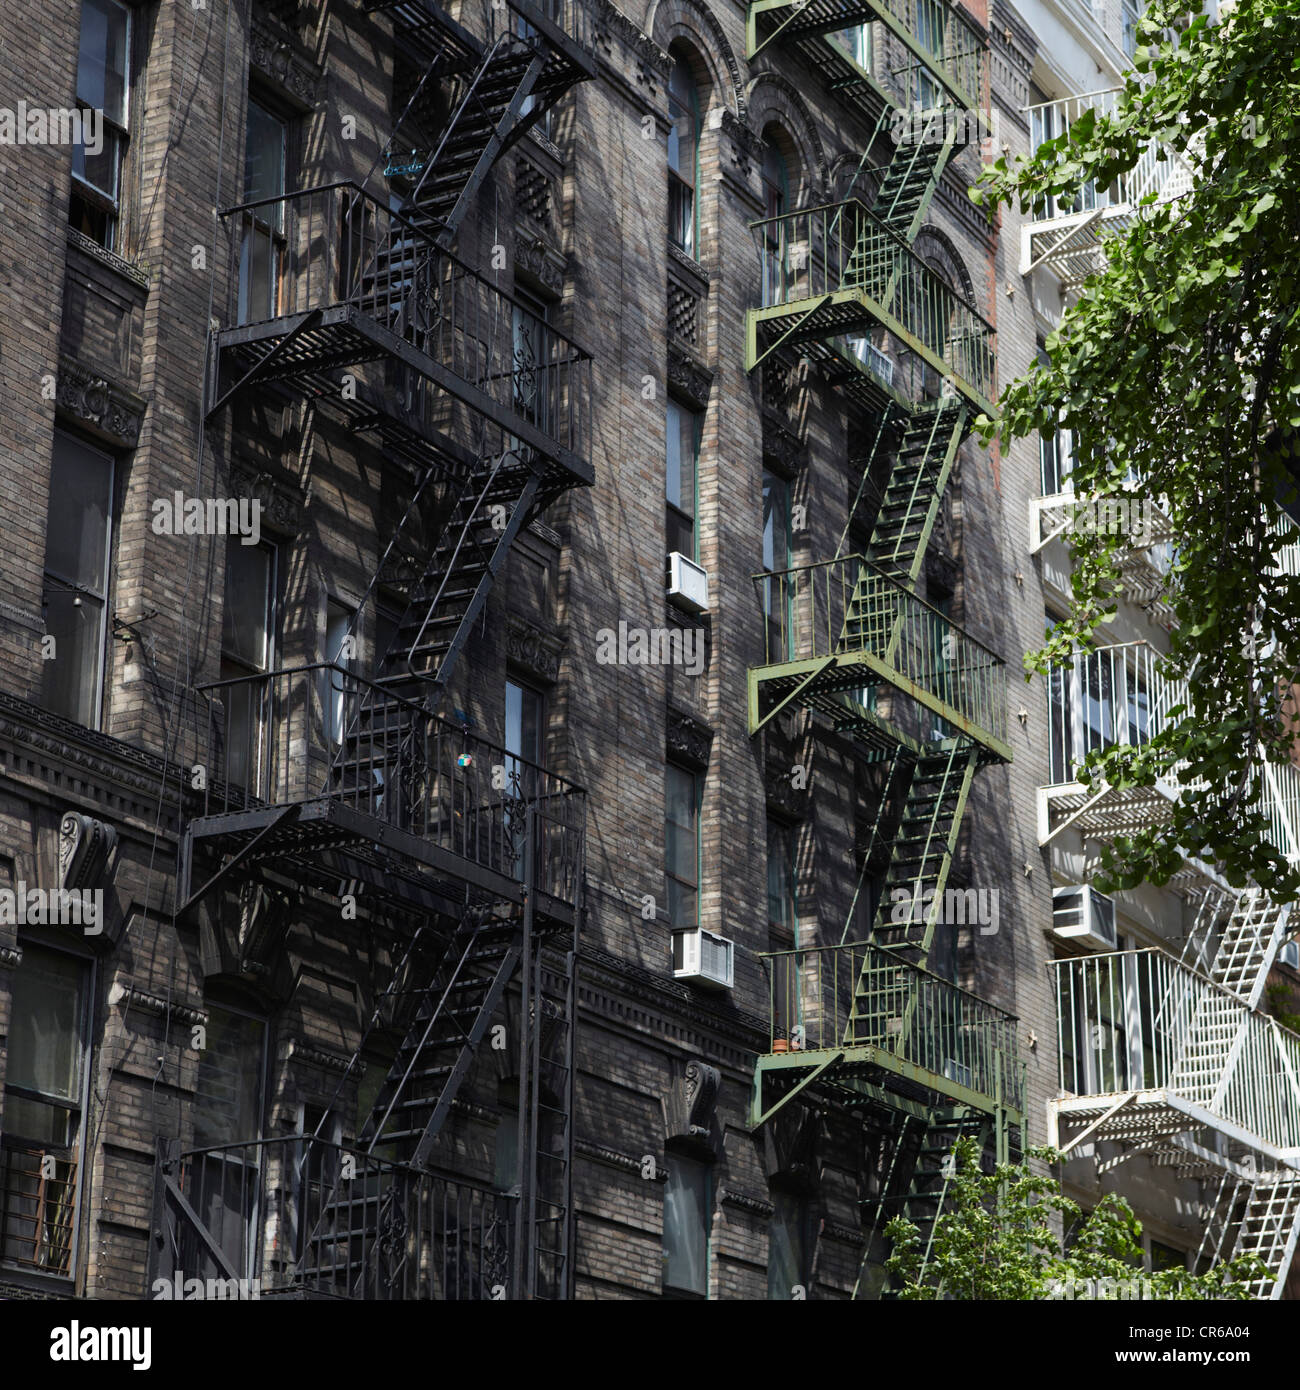 USA, New York, Building with fire escape staircases - Stock Image